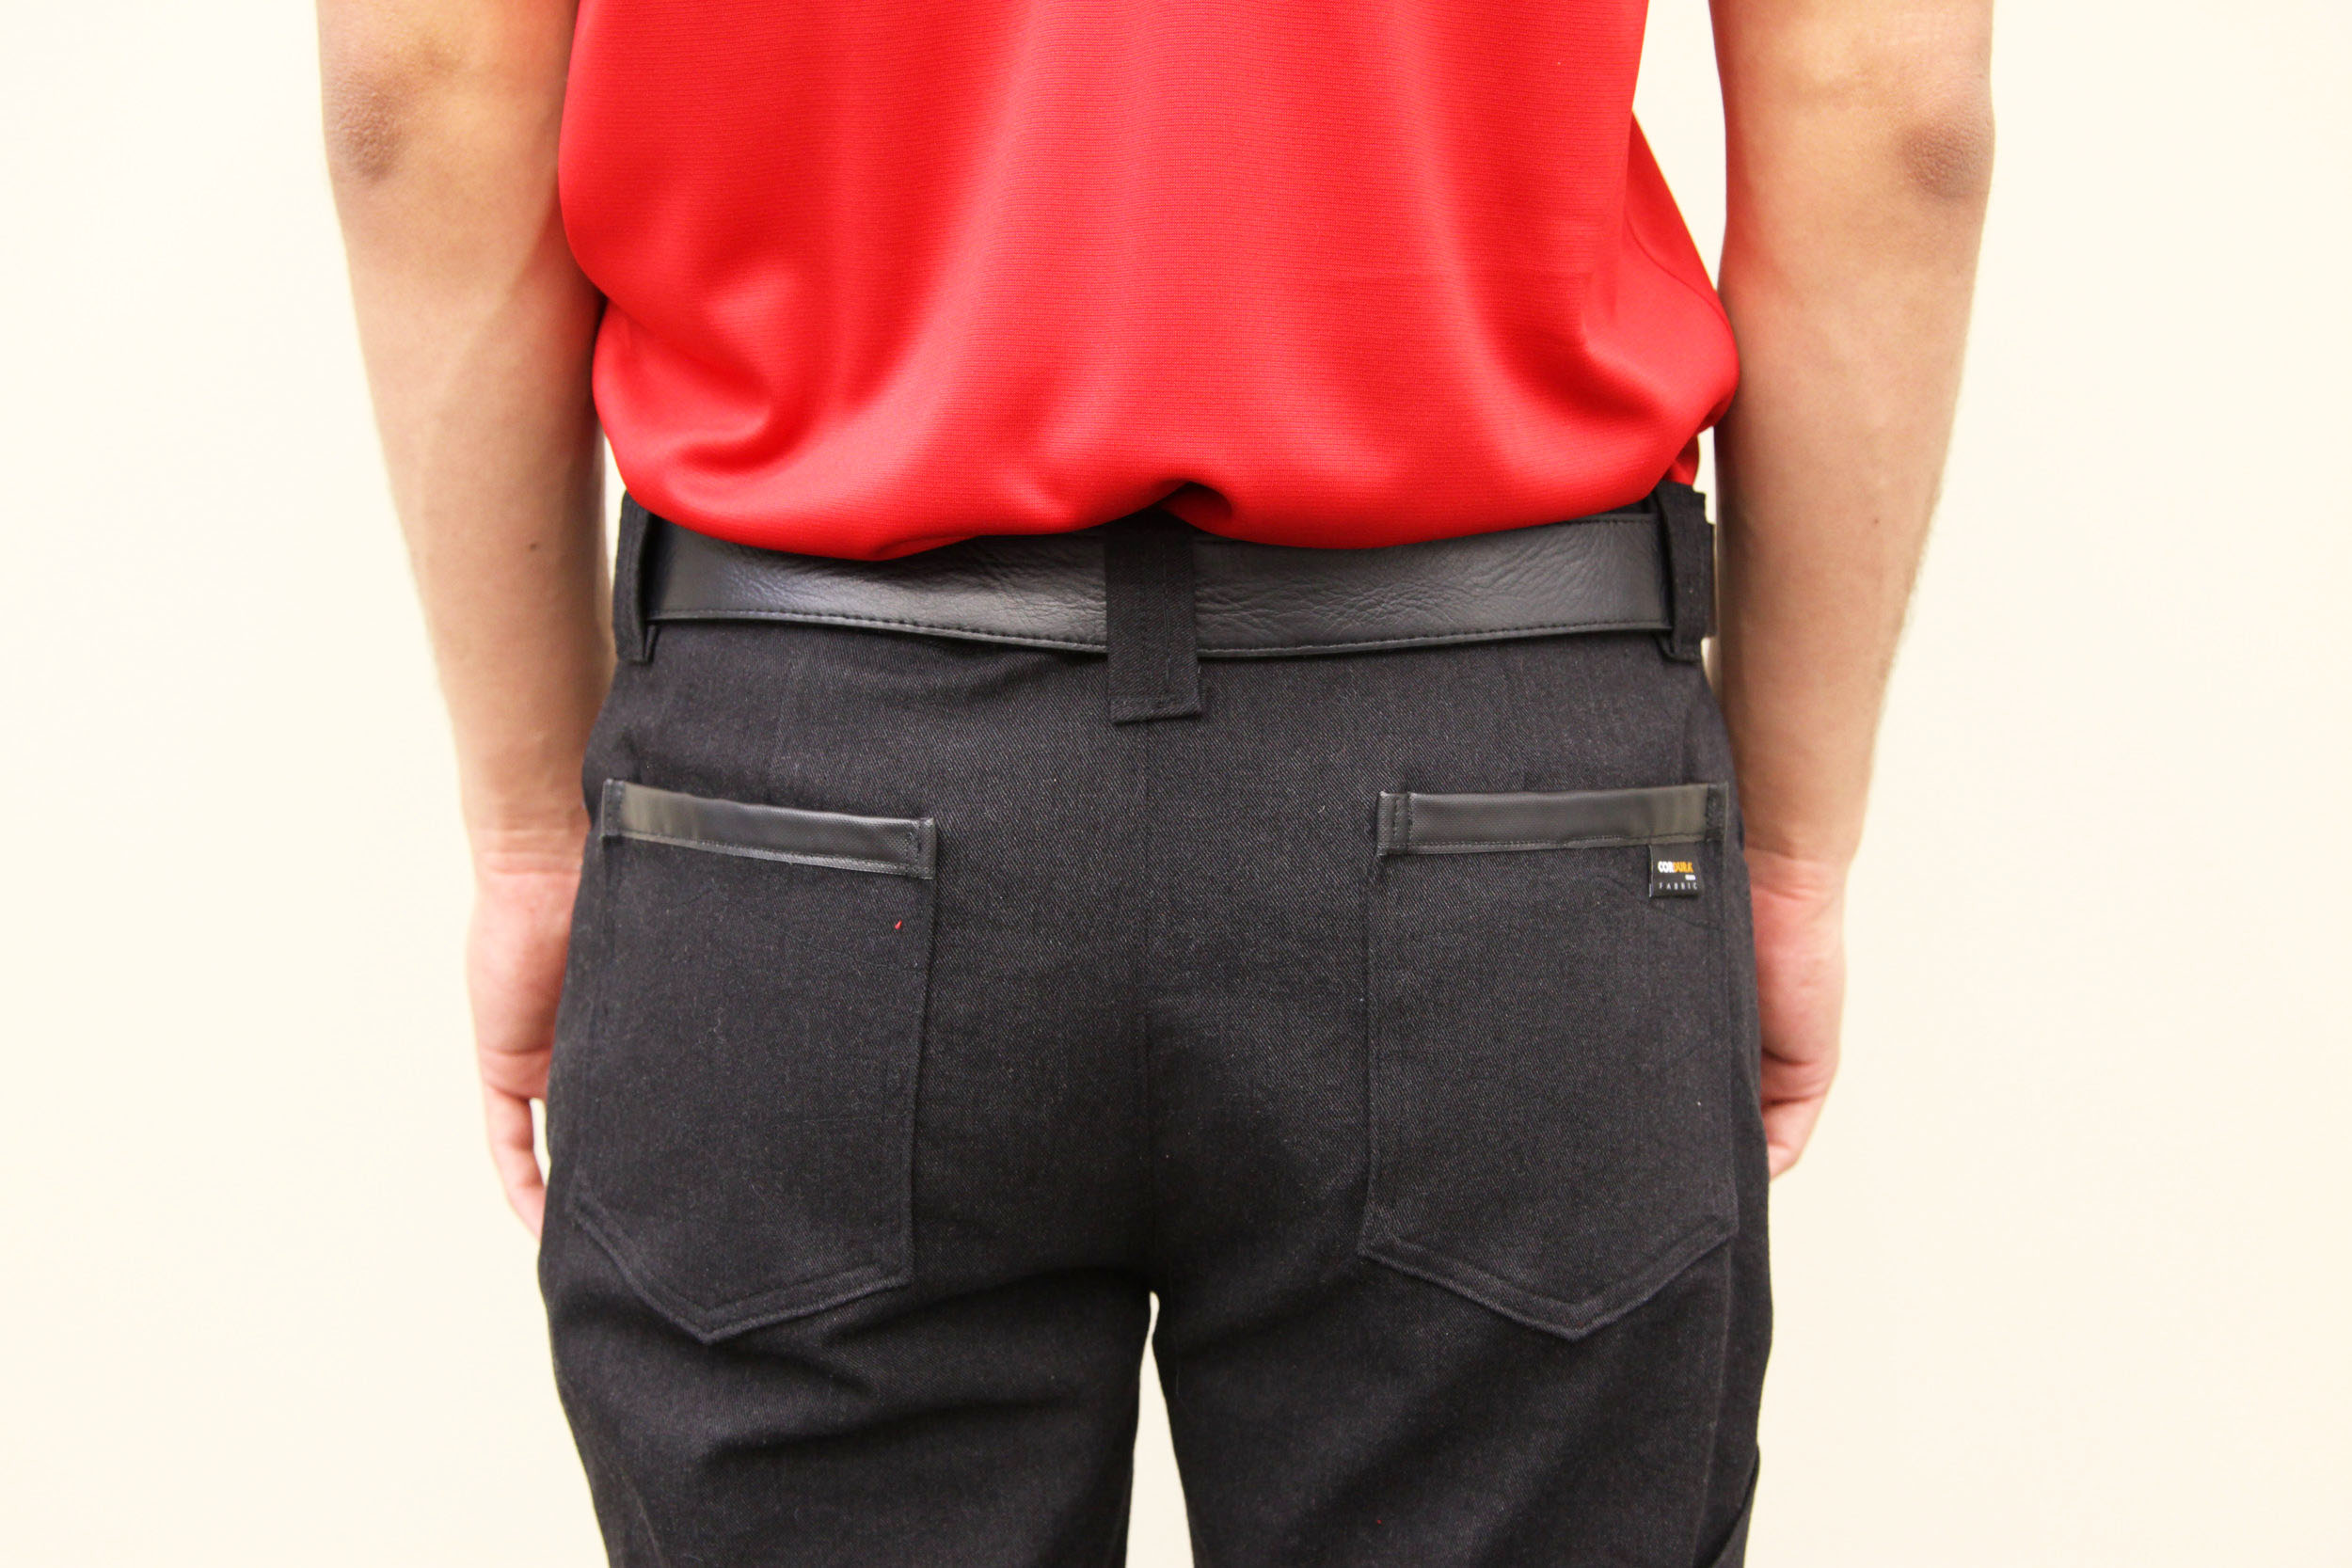 Ballistic Trim at Back Pocket for Durability